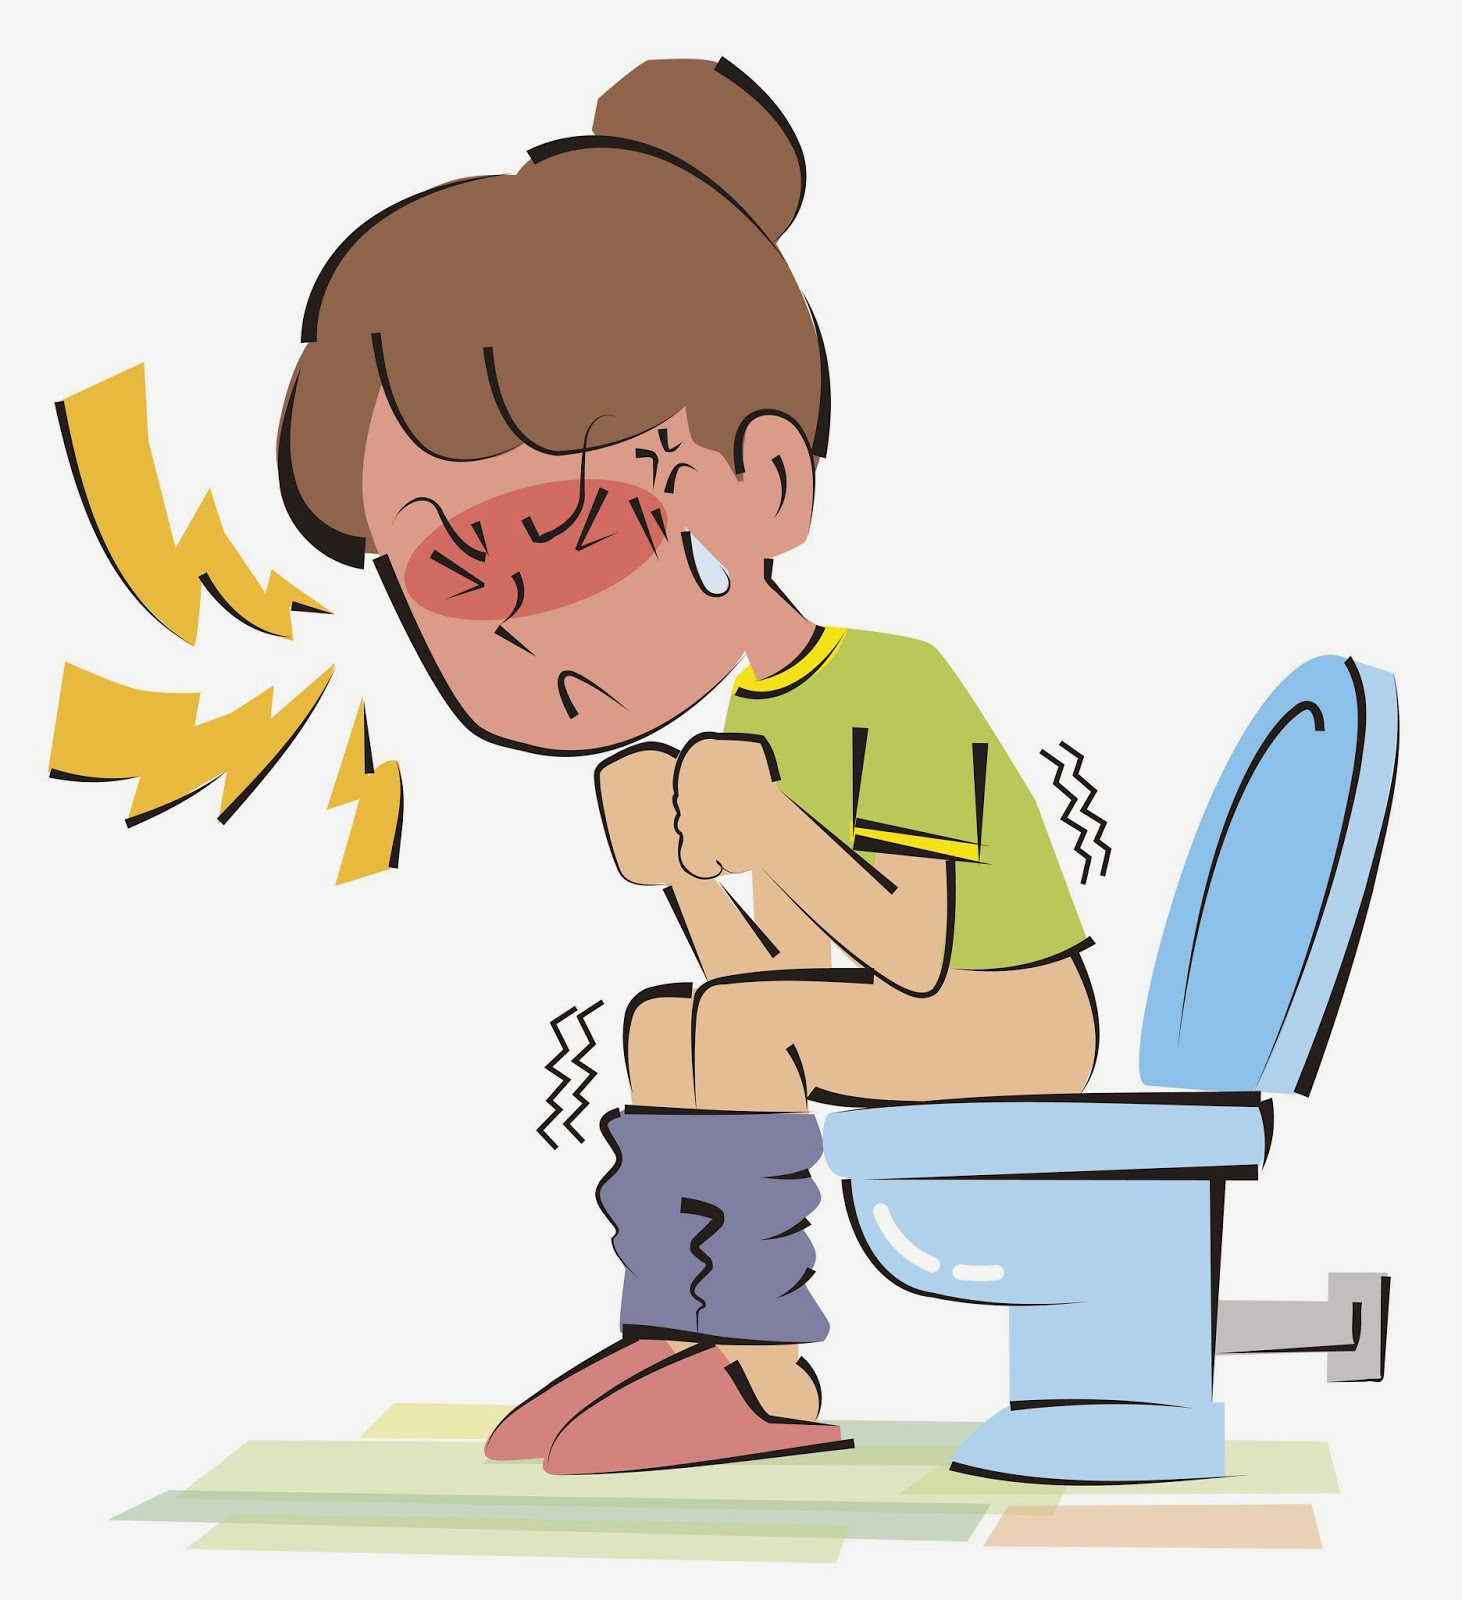 https://3.bp.blogspot.com/-yJiLivElgag/WJfxchhYqXI/AAAAAAAAAJ4/yLHHP00I58IJCeeJ5BzKNDjksKMQv9CPACLcB/s1600/cartoon-woman-on-toilet-with-constipation.jpg